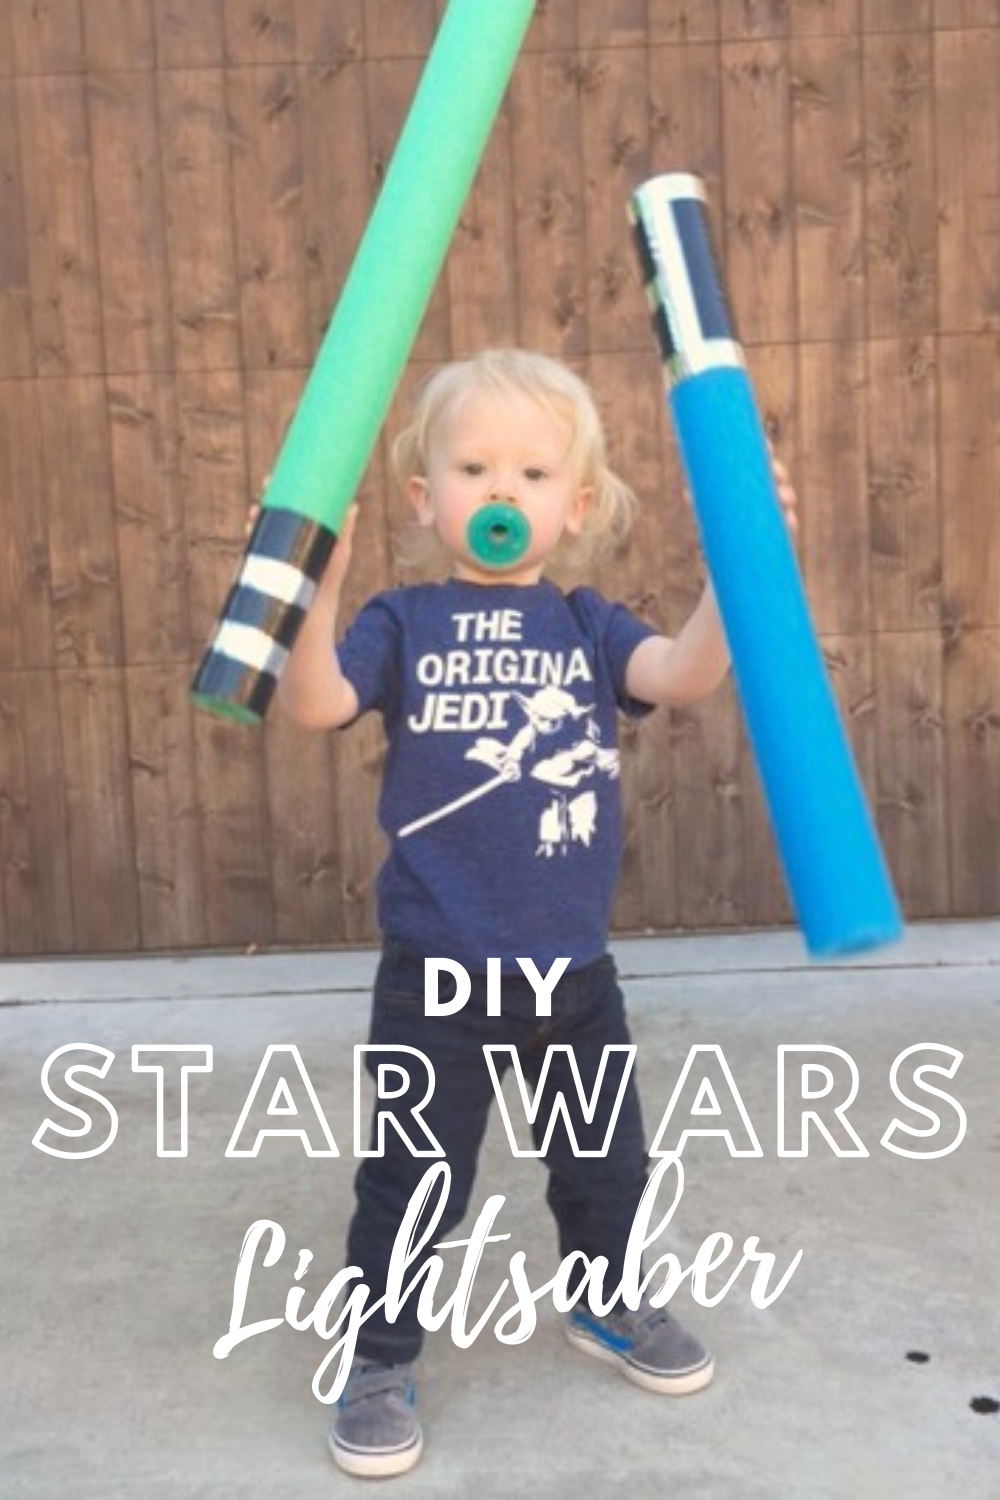 DIY STAR WARS Lightsaber // Life Anchored